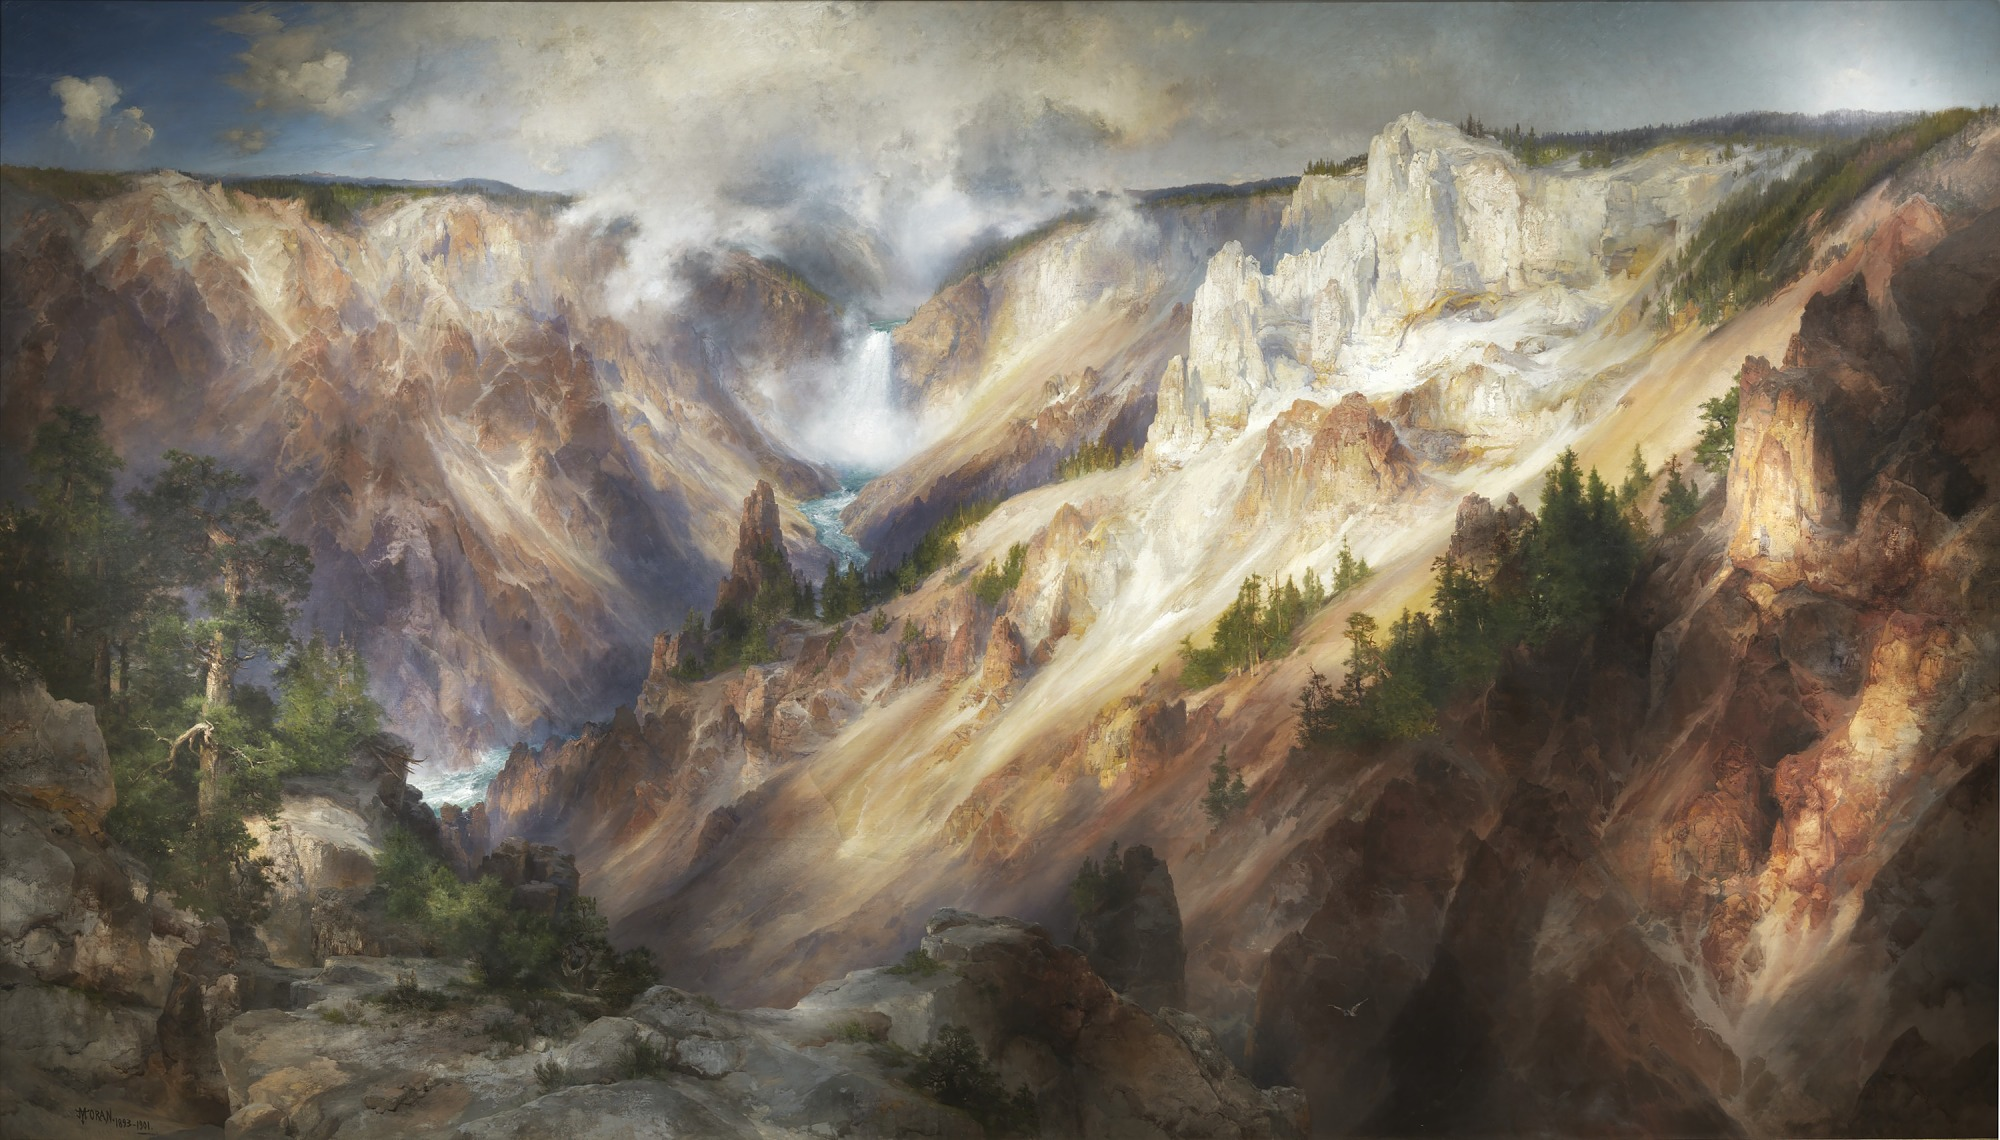 images for The Grand Canyon of the Yellowstone